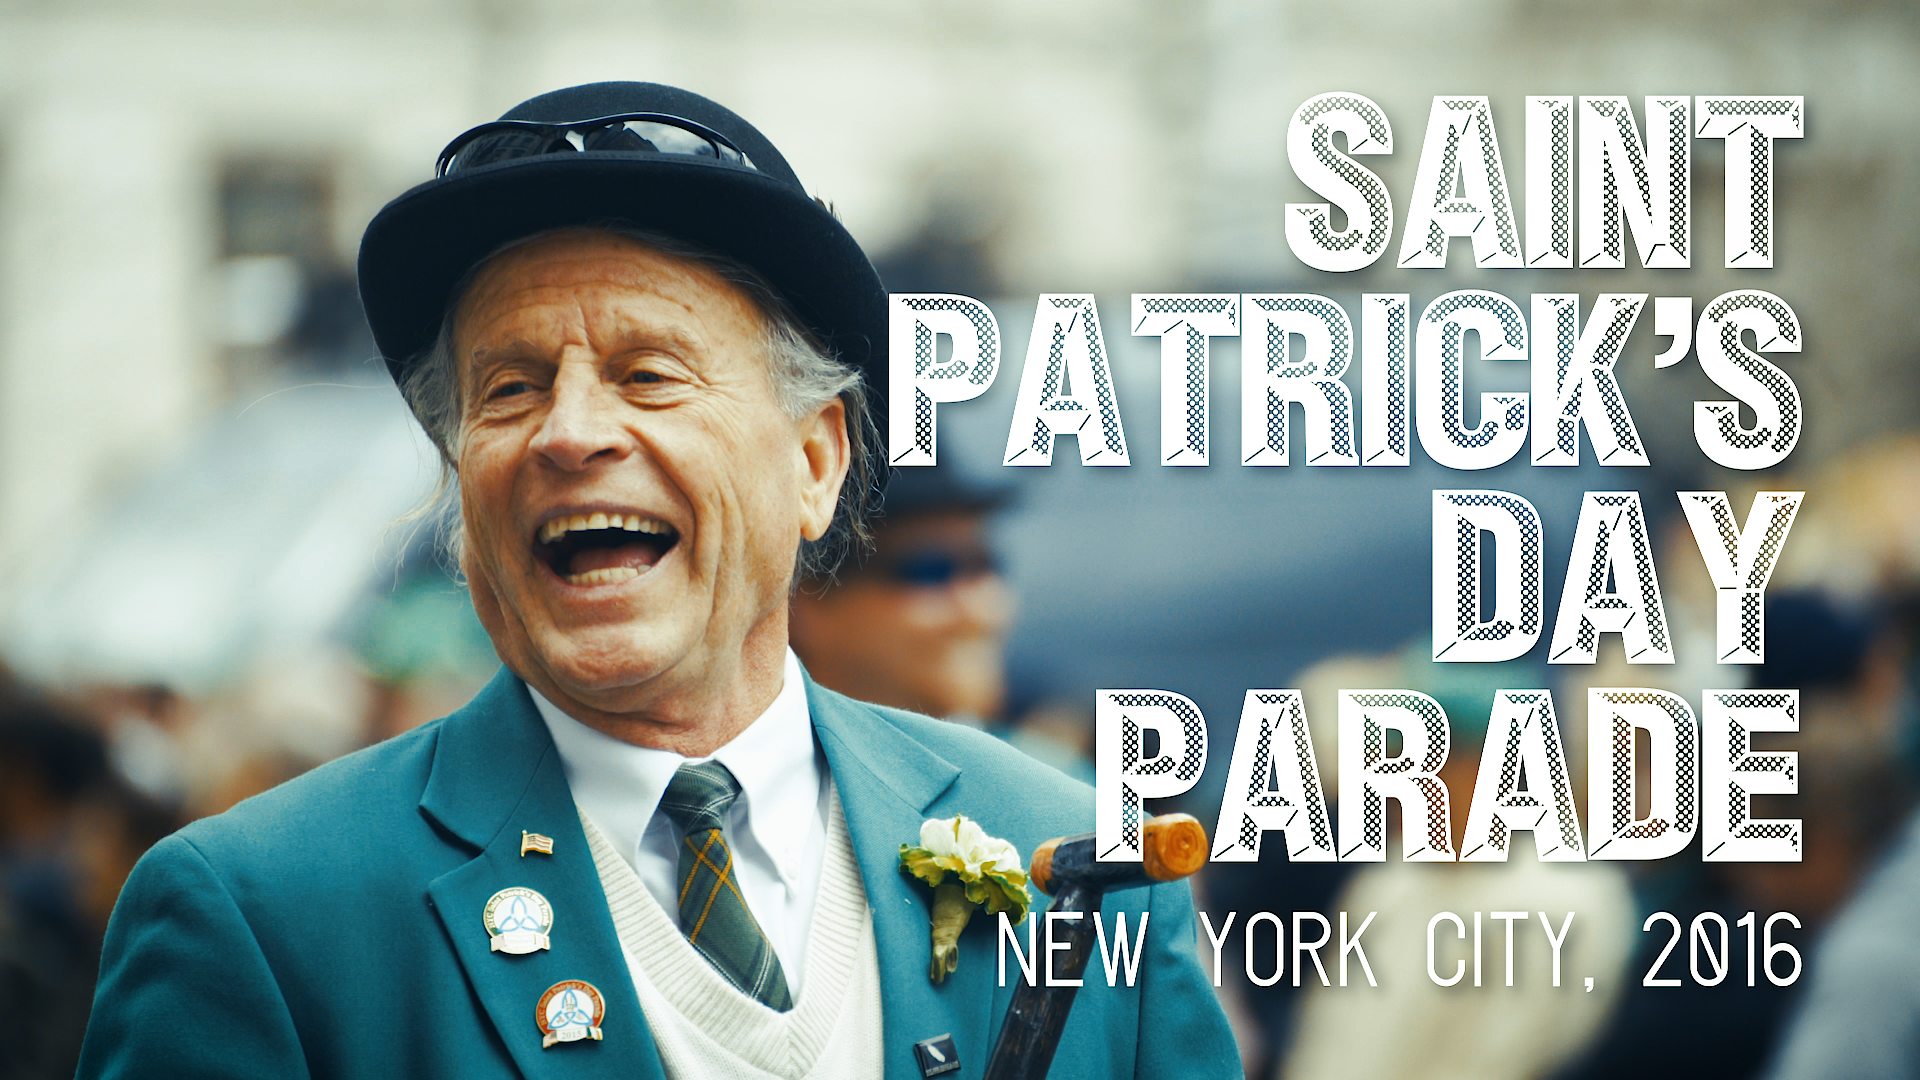 Saint Patrick's Day Parade (NYC, 2016)